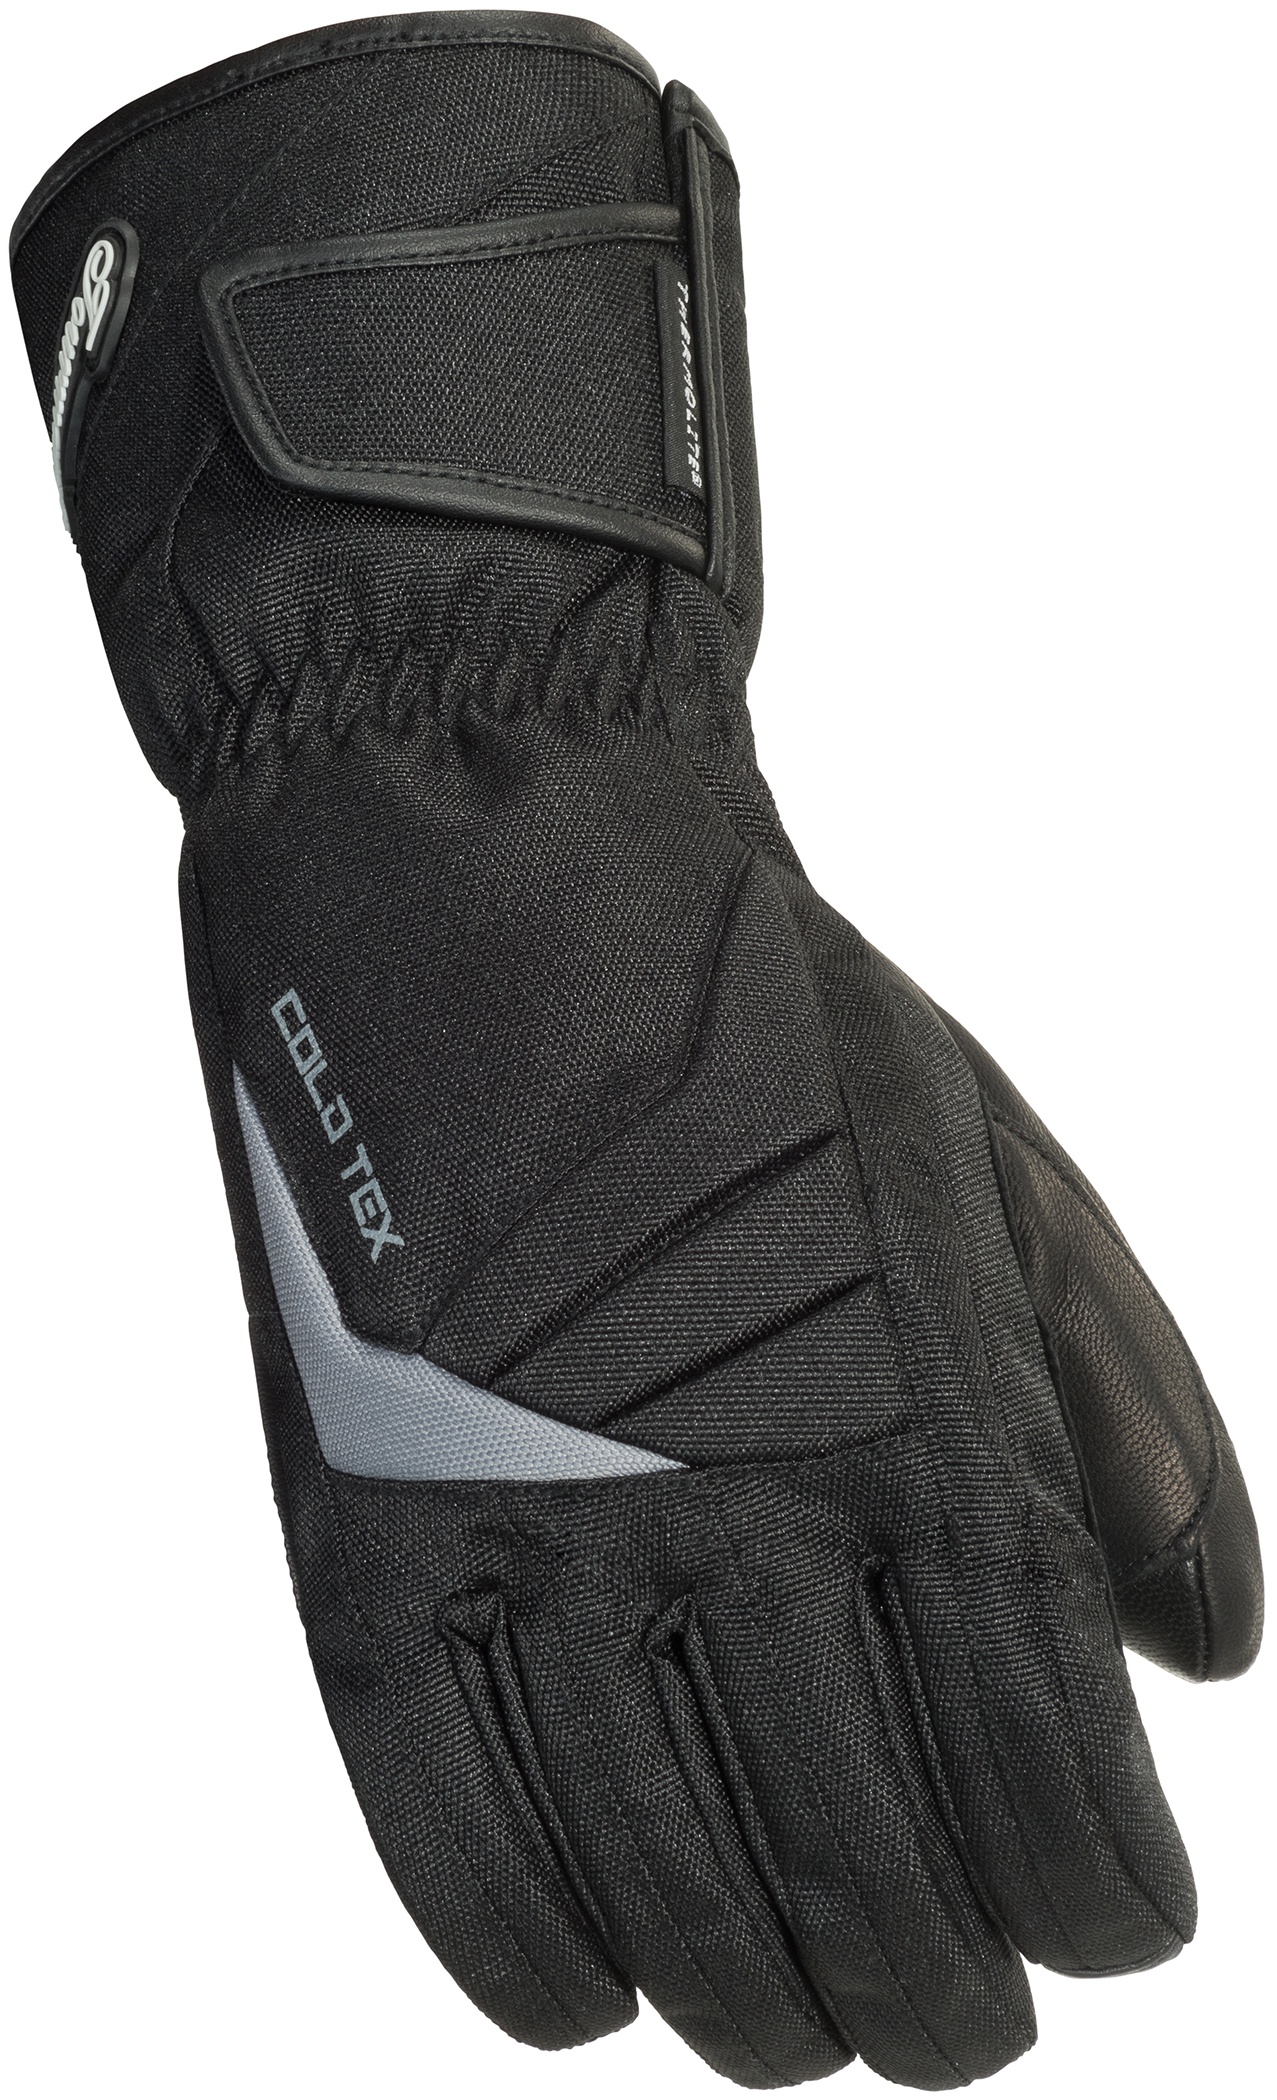 Tourmaster Cold-Tex 3.0 Gloves